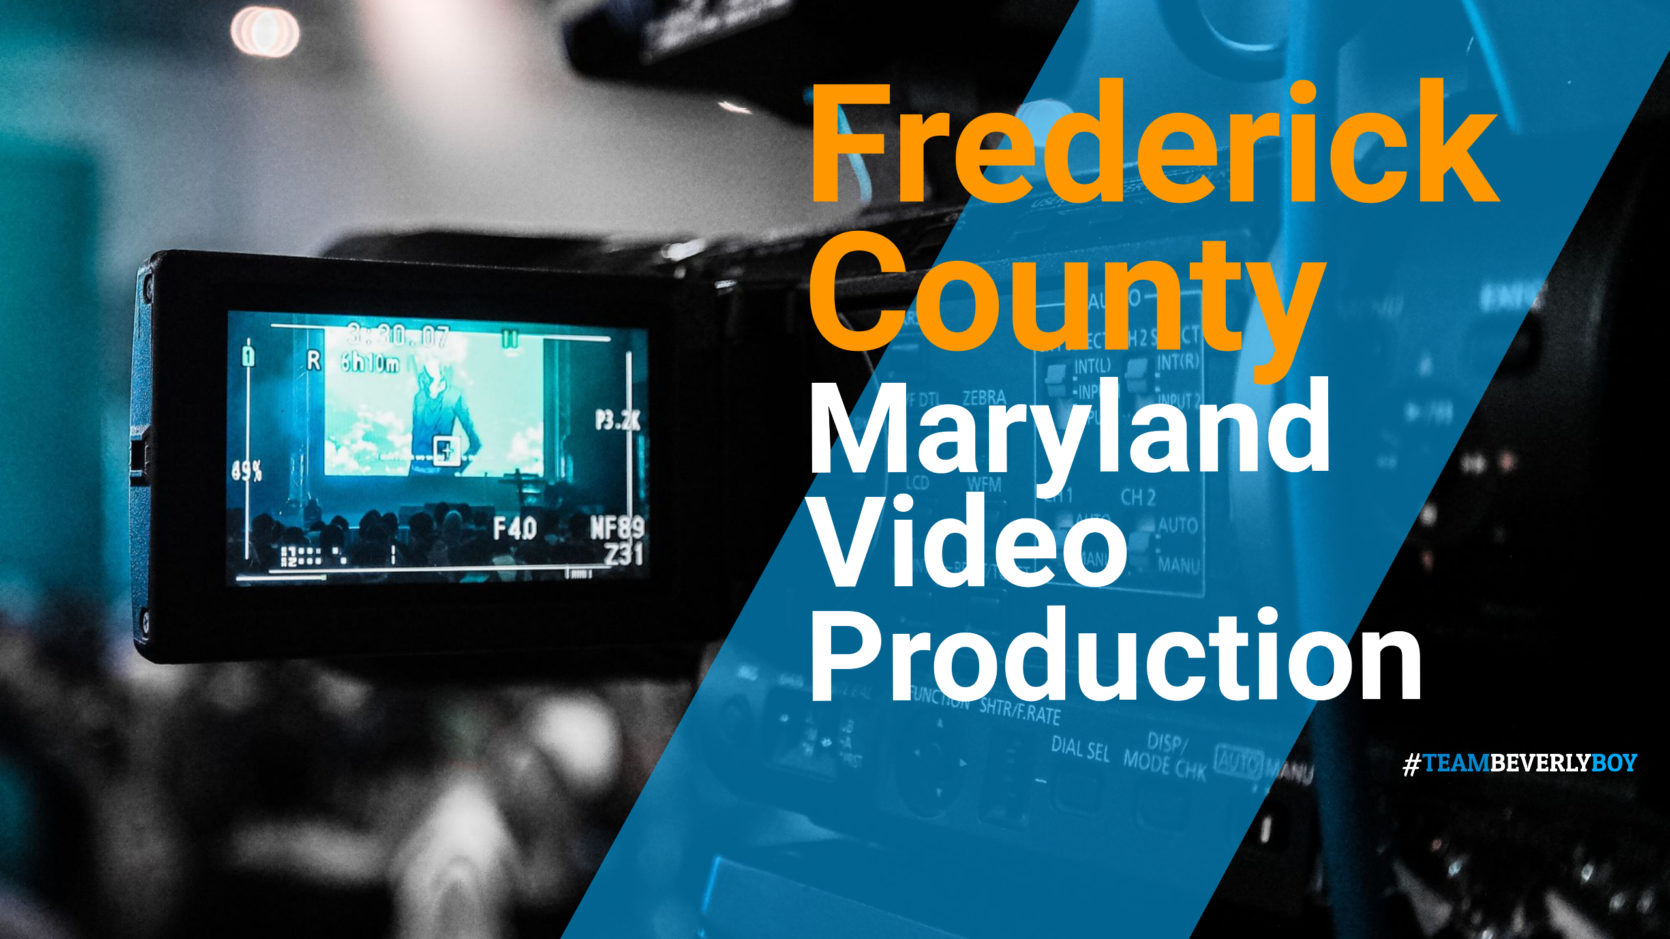 Frederick County MD Video Production (1)